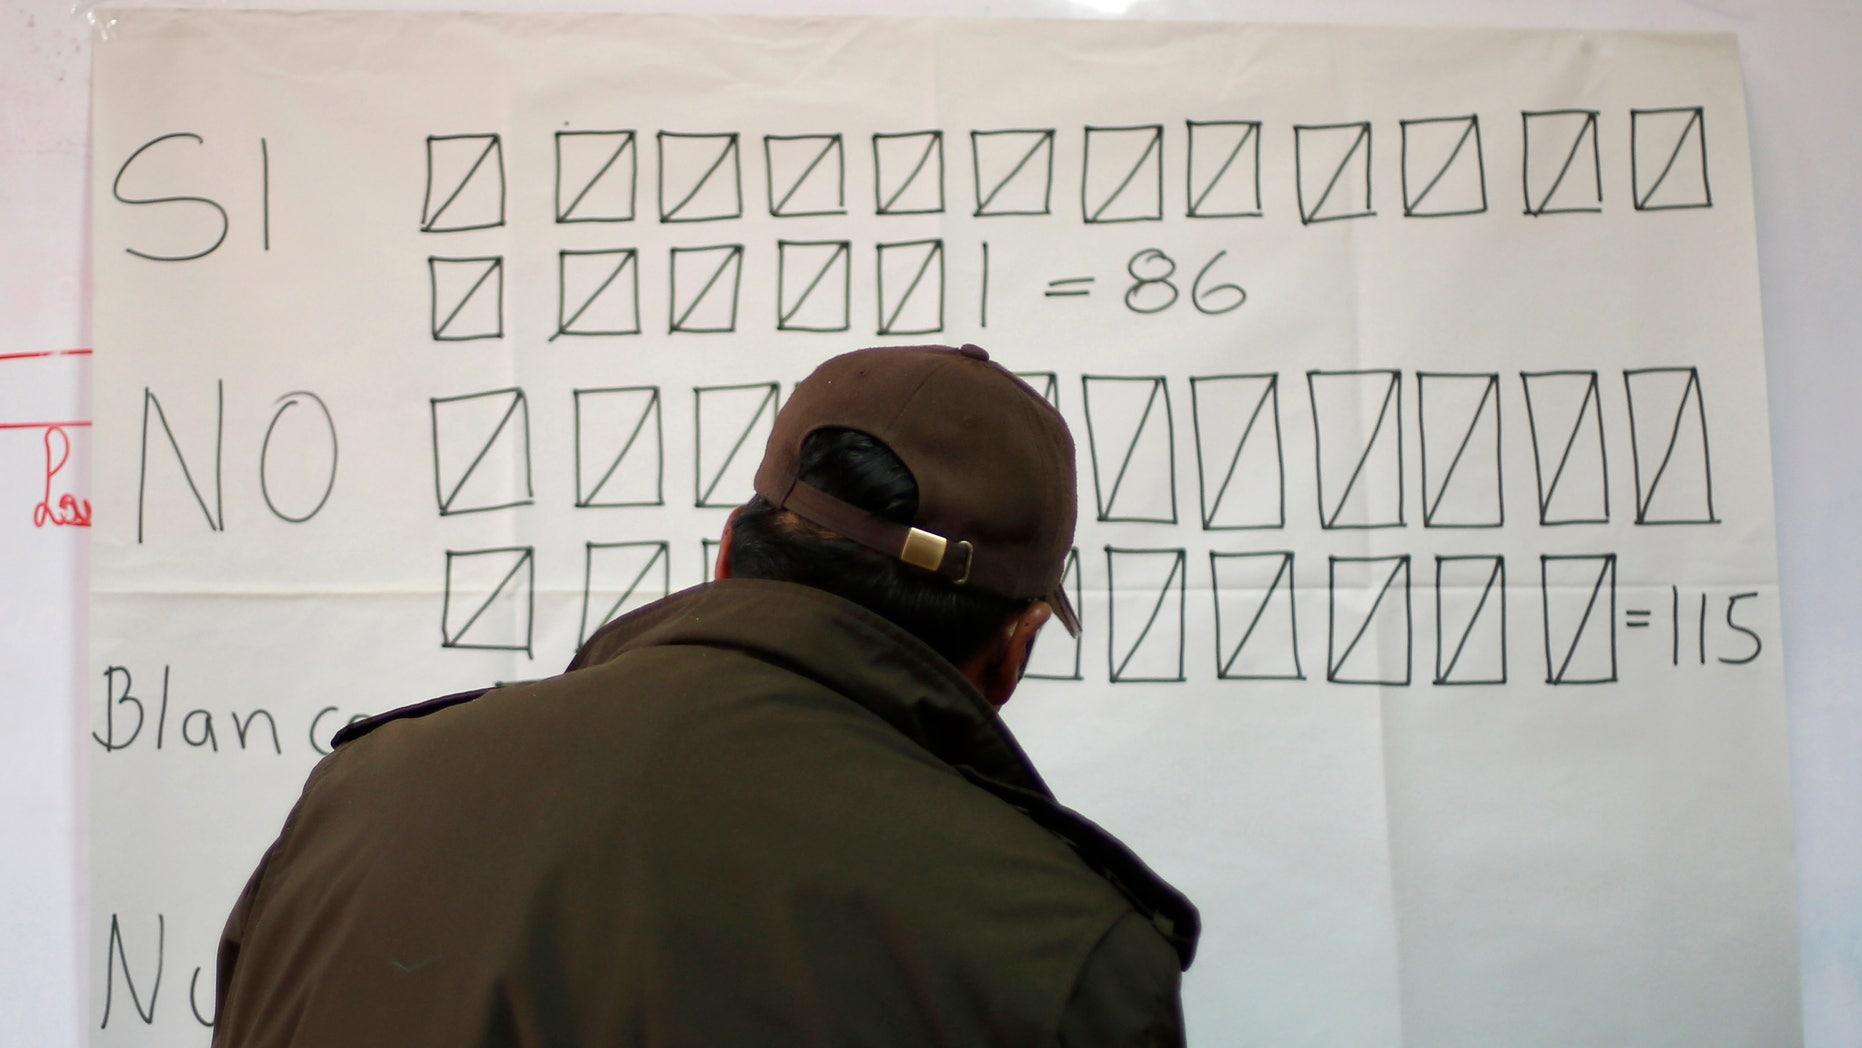 An electoral court representative tallies votes in La Paz, Bolivia, Sunday, Feb. 21, 2016.